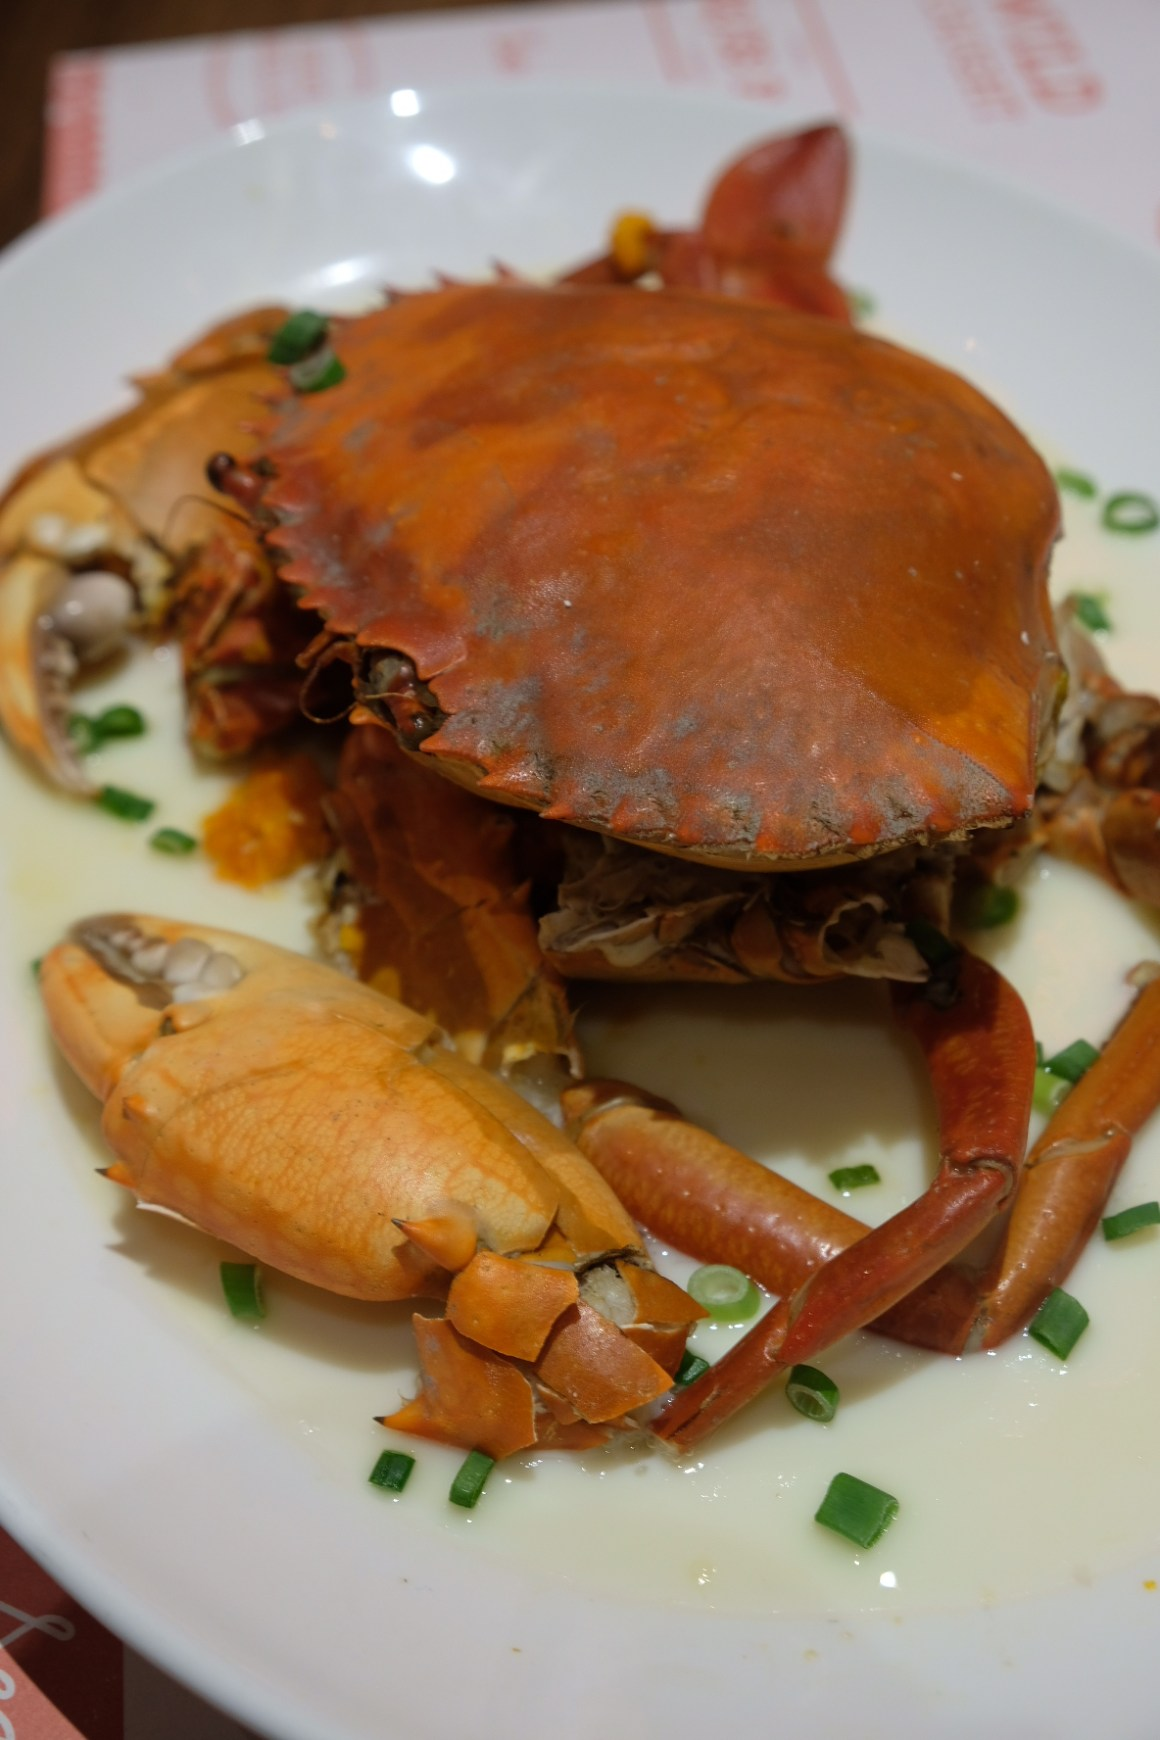 Brand New Crab Menu By Pince & Pints - Whole Steamed Crab in Egg White